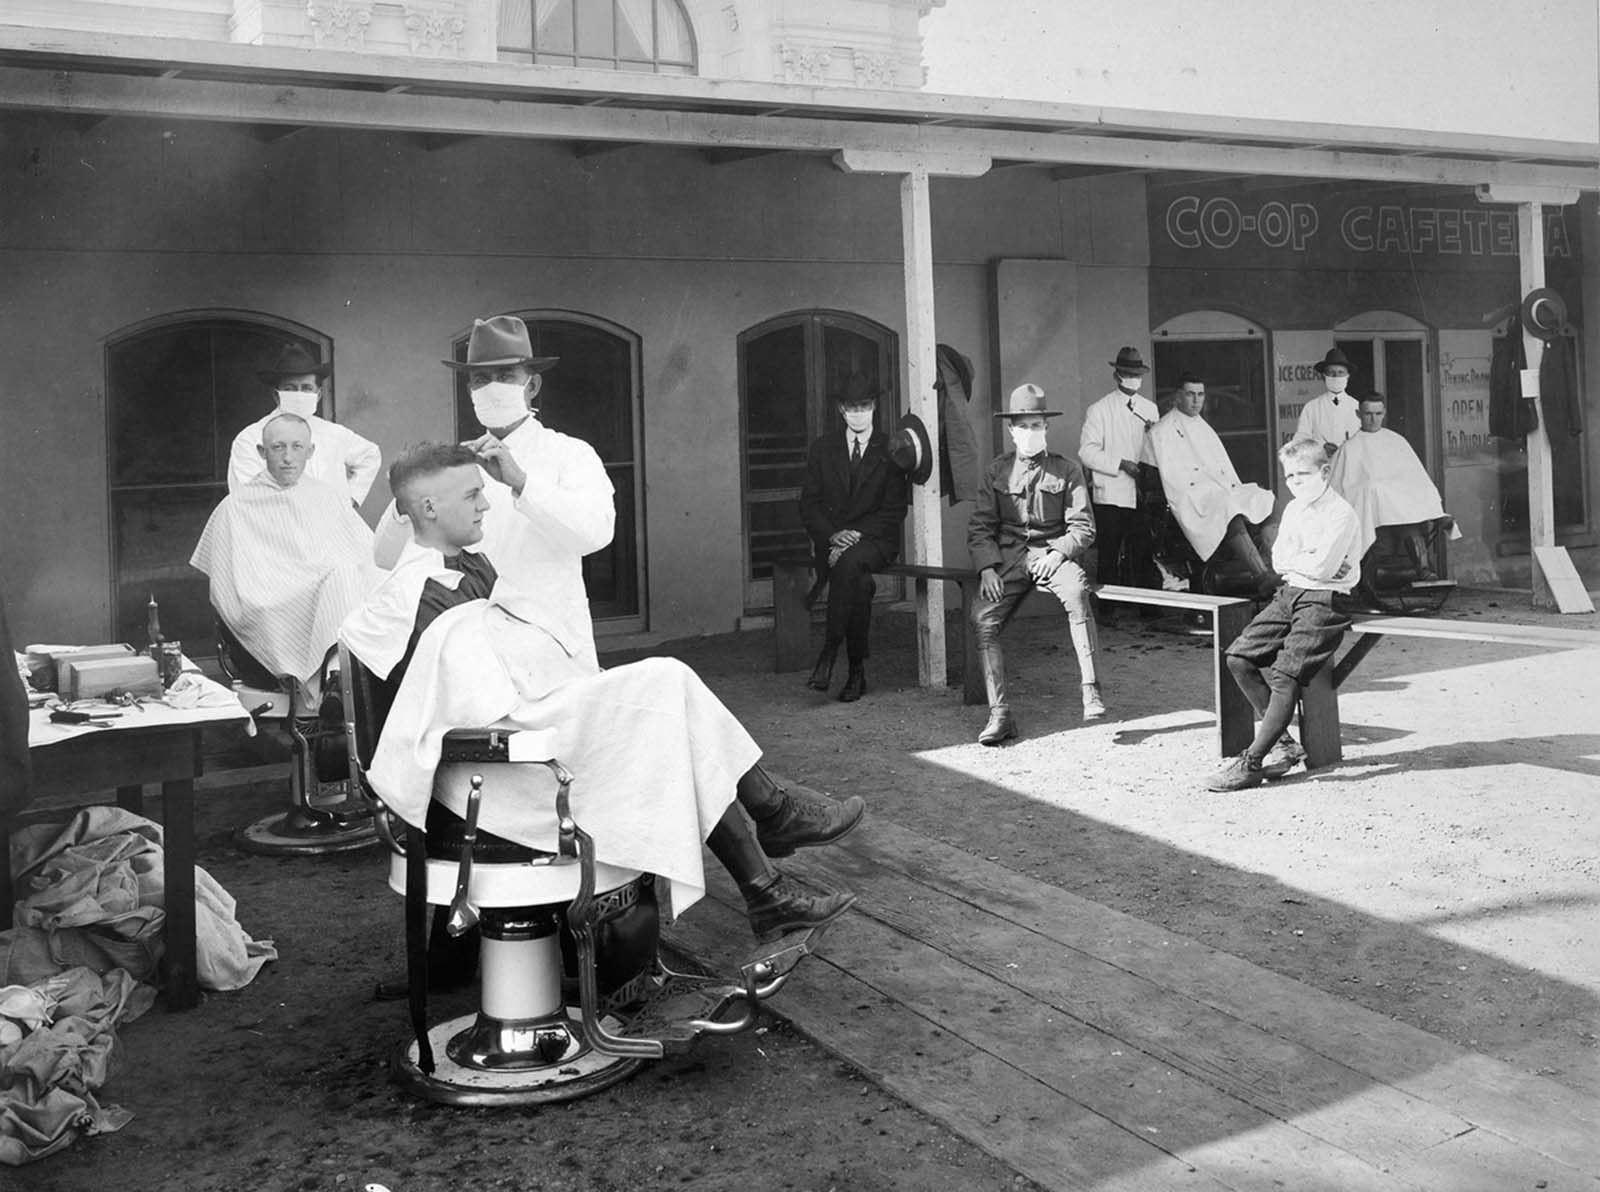 An open-air barber shop serves customers during the epidemic at the University of California, Berkeley, 1919.